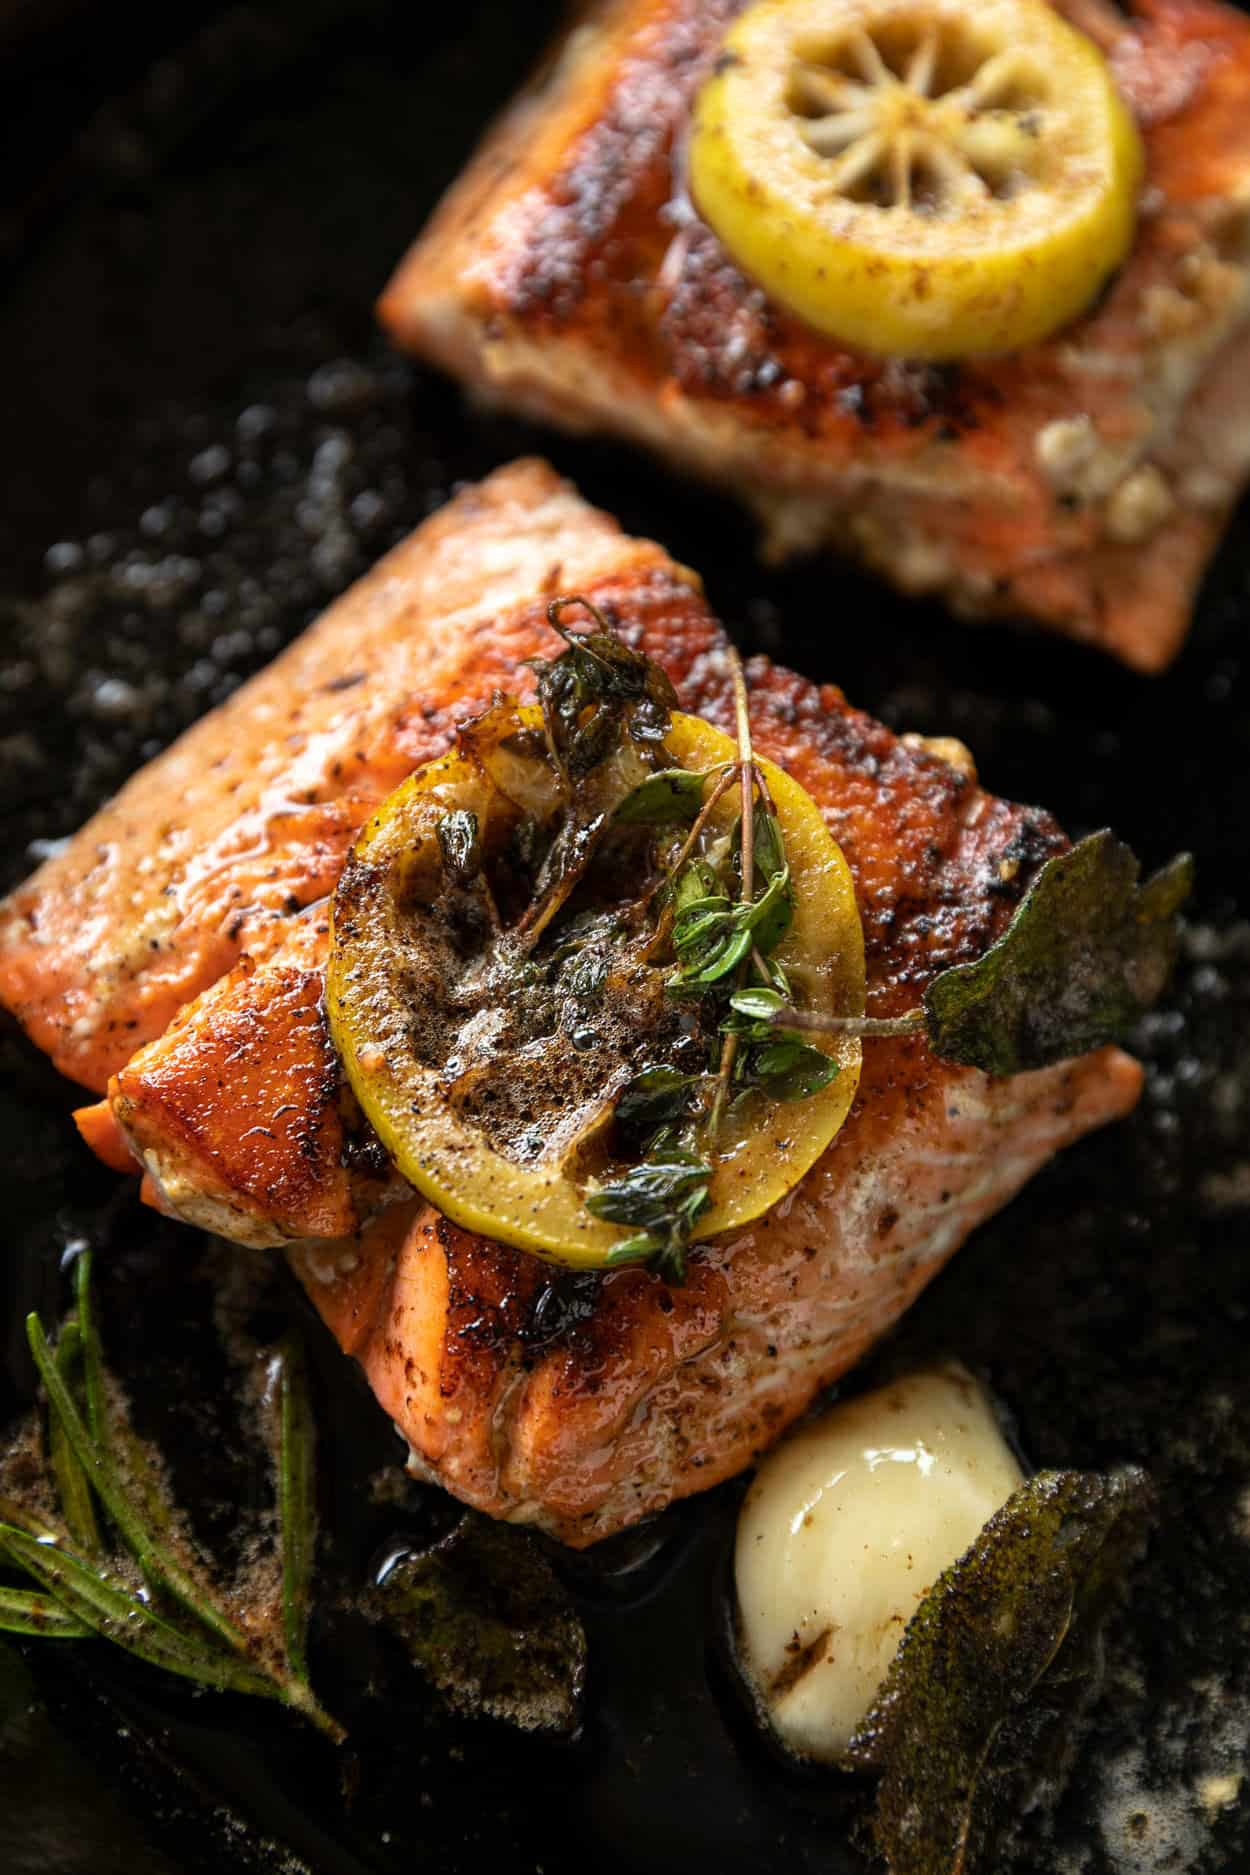 Cooking Brown Butter Herb Crispy Skin Salmon, skin side down in cast iron skillet with lemon slices and brown butter, rosemary, garlic, thyme and sage.